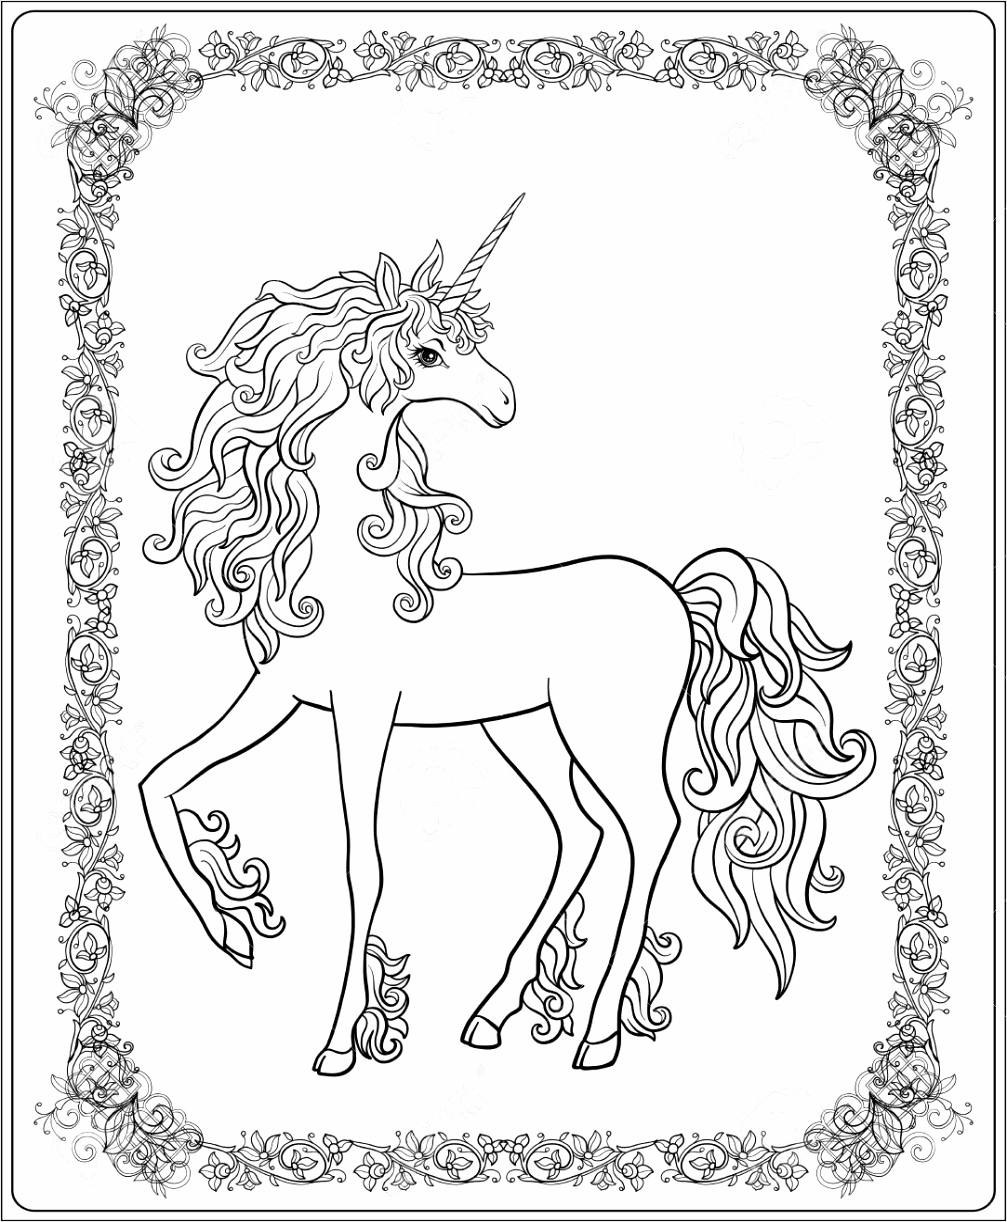 photo stock vector unicorn in the frame arabesque in the royal me val style outline drawing coloring page coloring bo rowee